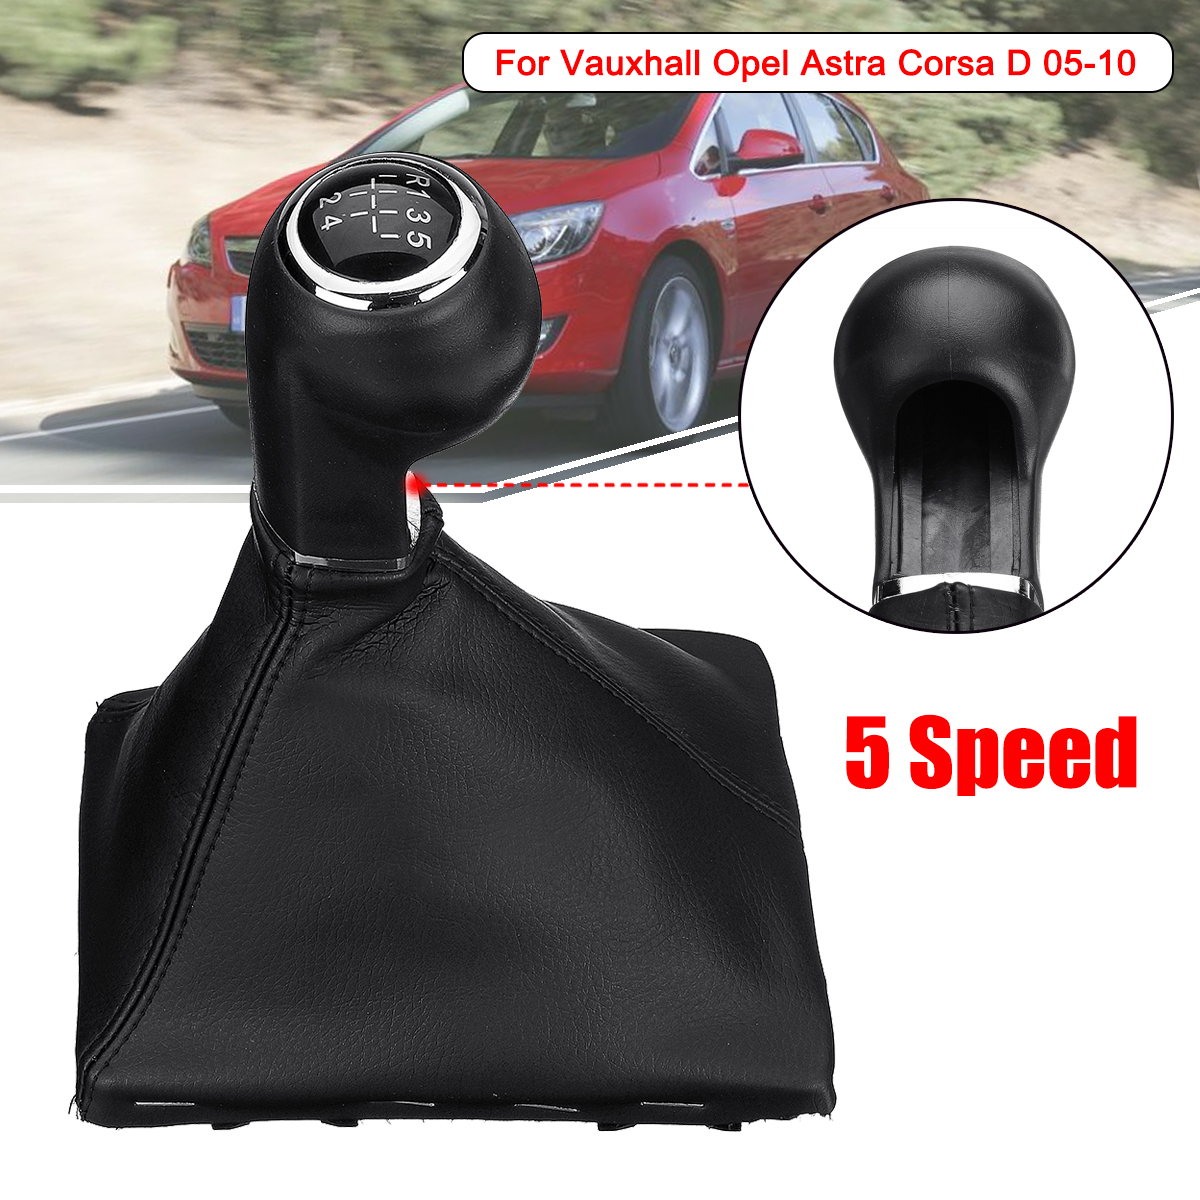 5 Speed Car Gear Shift Knob Gaiter Boot Cover for Vauxhall Opel Astra Corsa D 2005-2010